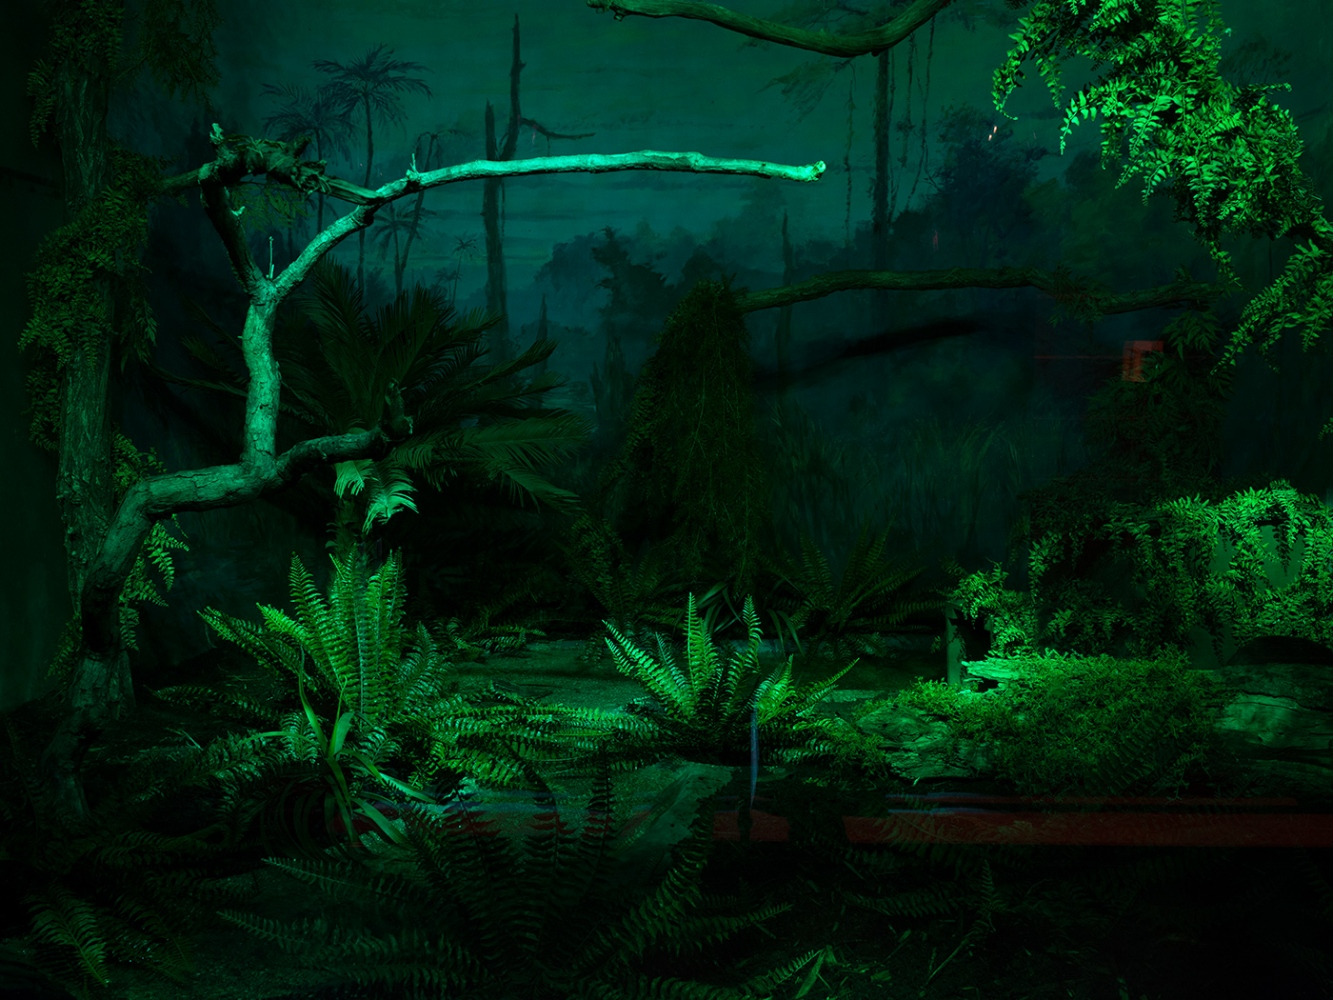 Nocturnal Bird Exhibit, Bronk Zoo, 2012